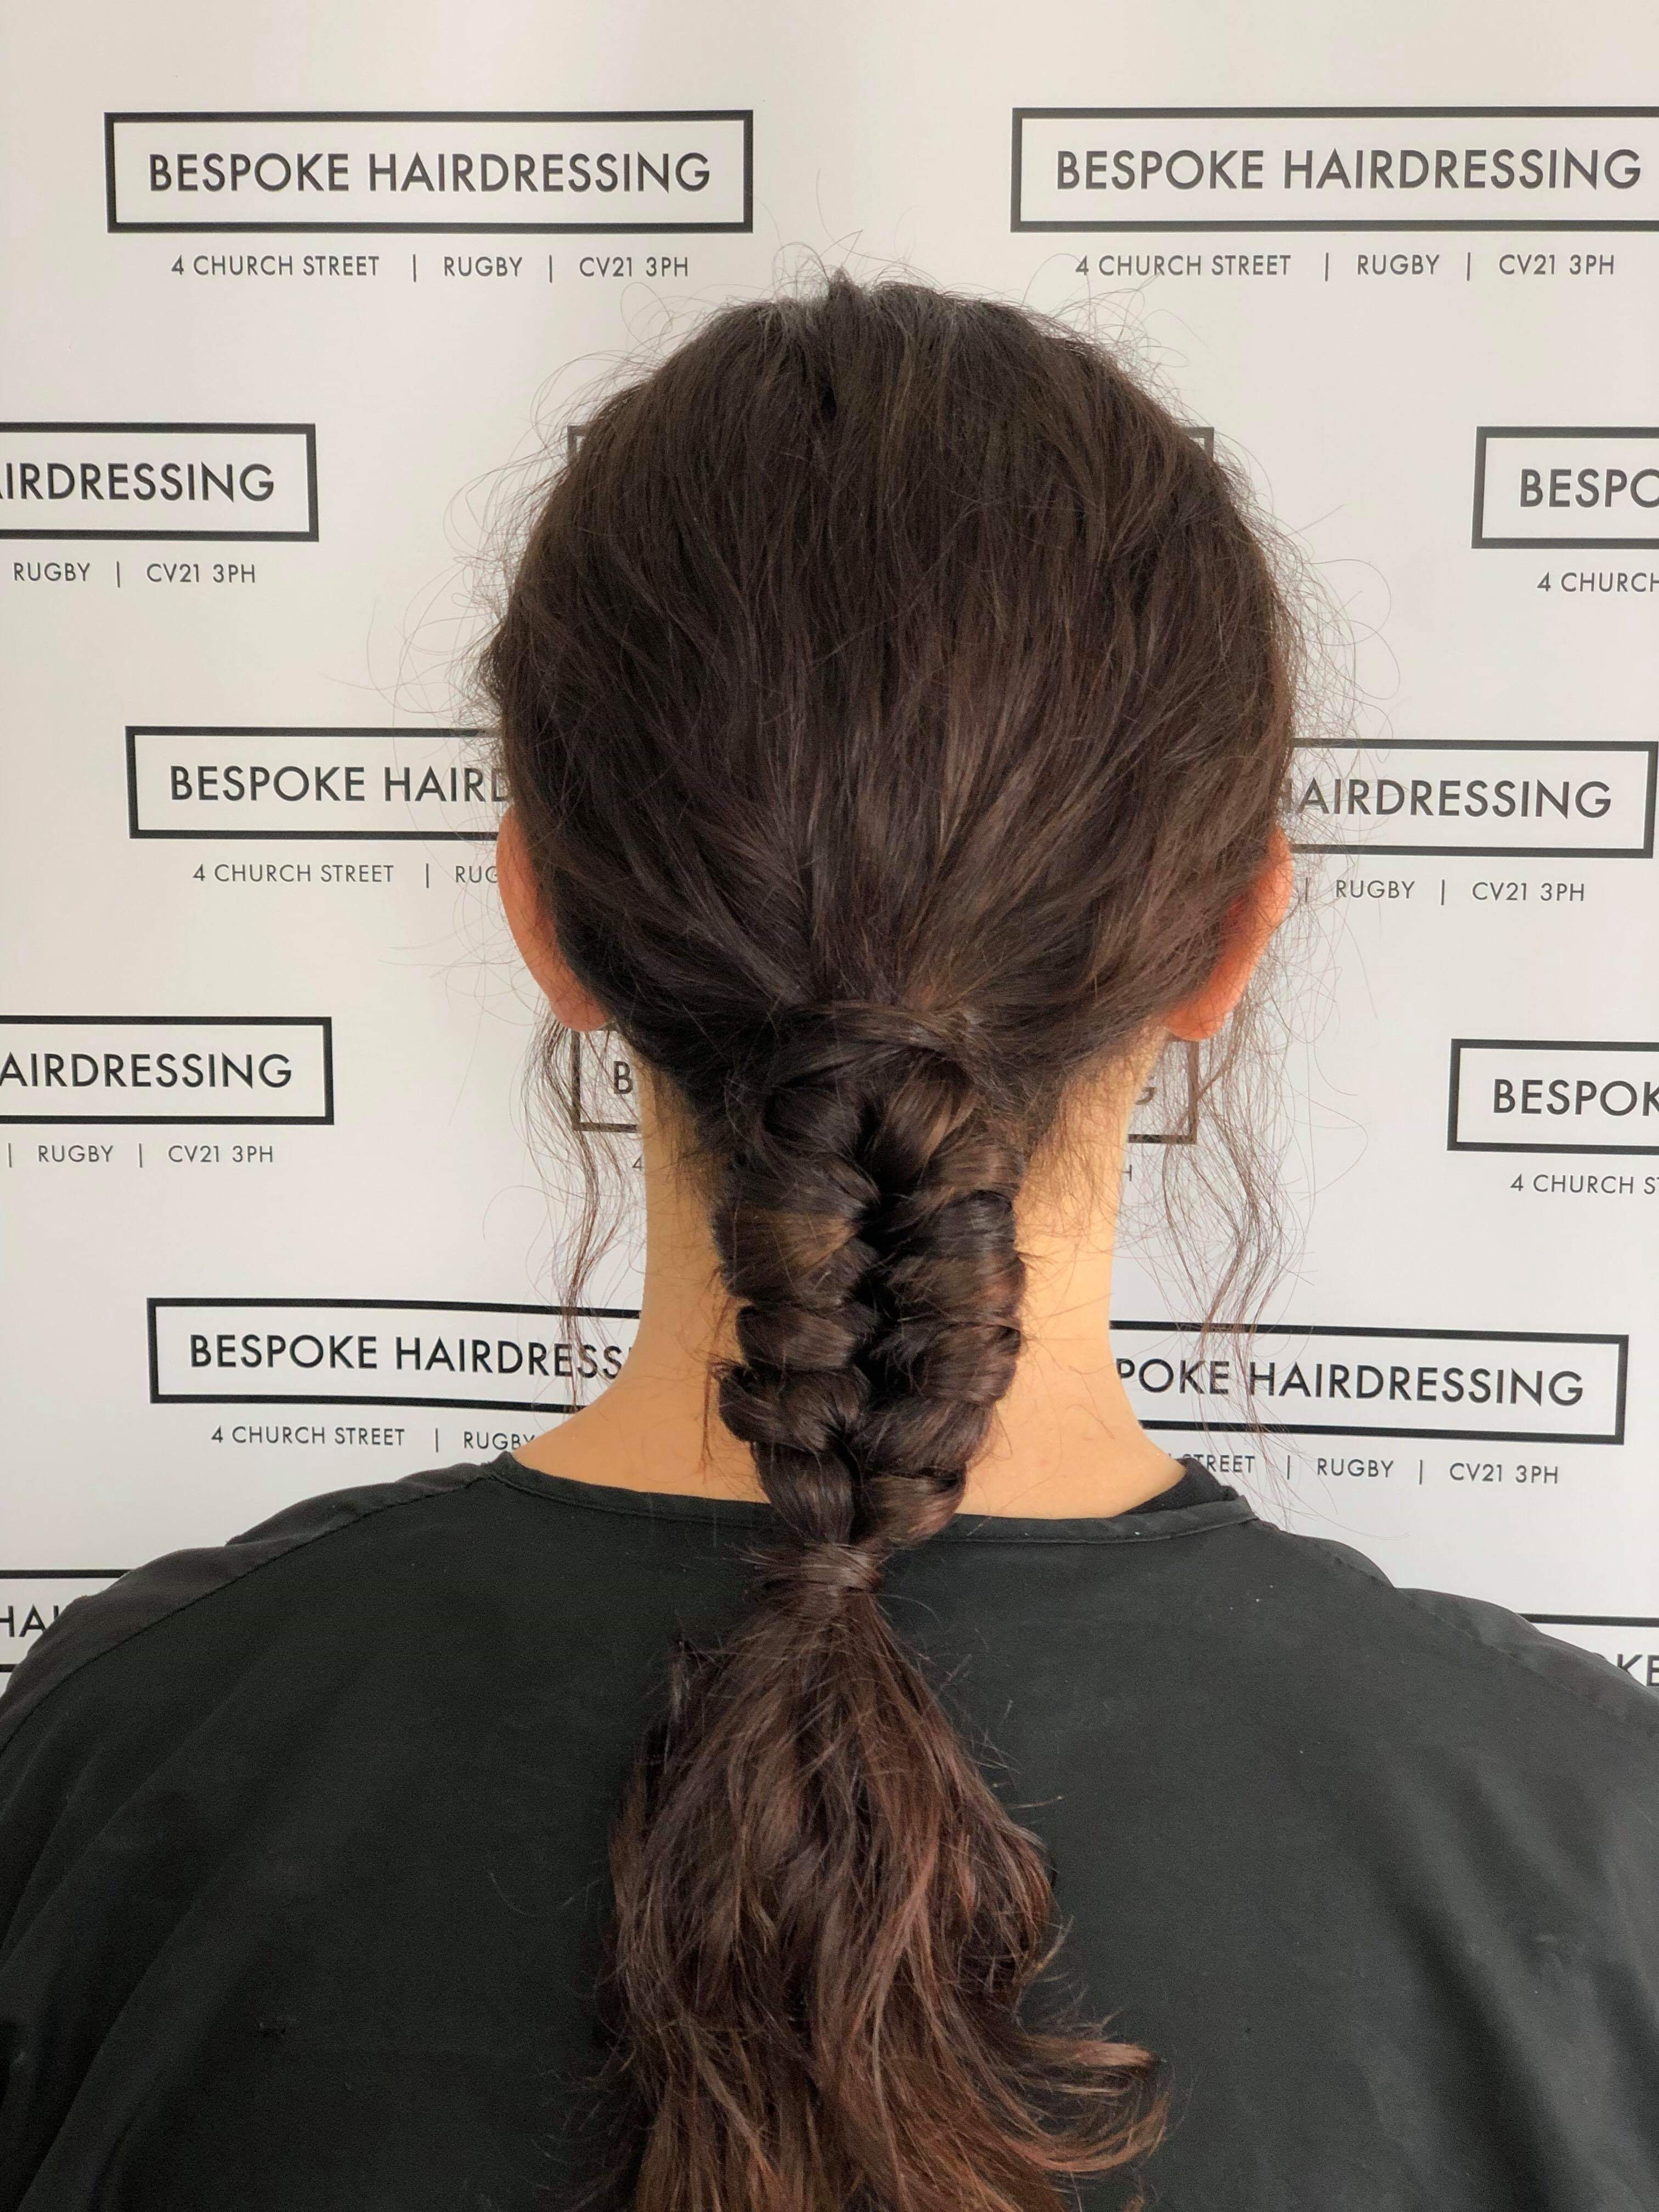 Bespoke Hairdressing Rugby partly braided pony-tail